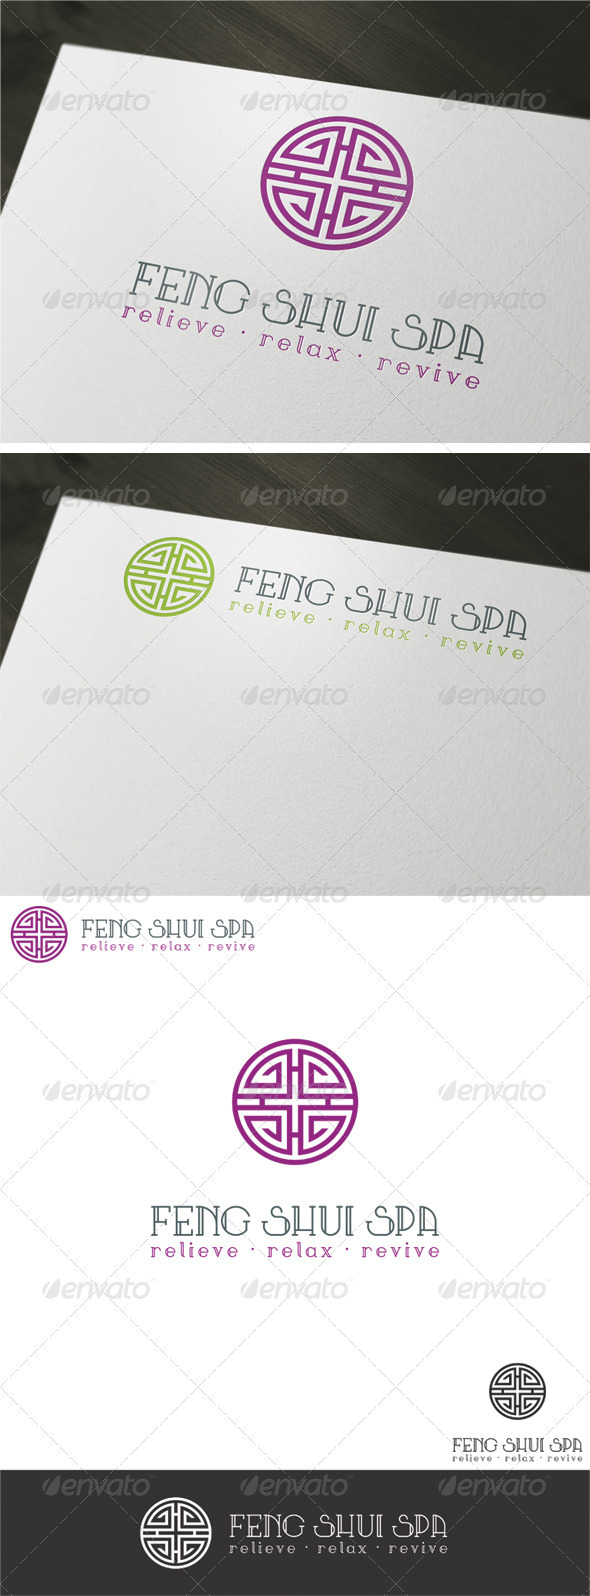 Feng Shui Spa Logo Template - Vector Abstract